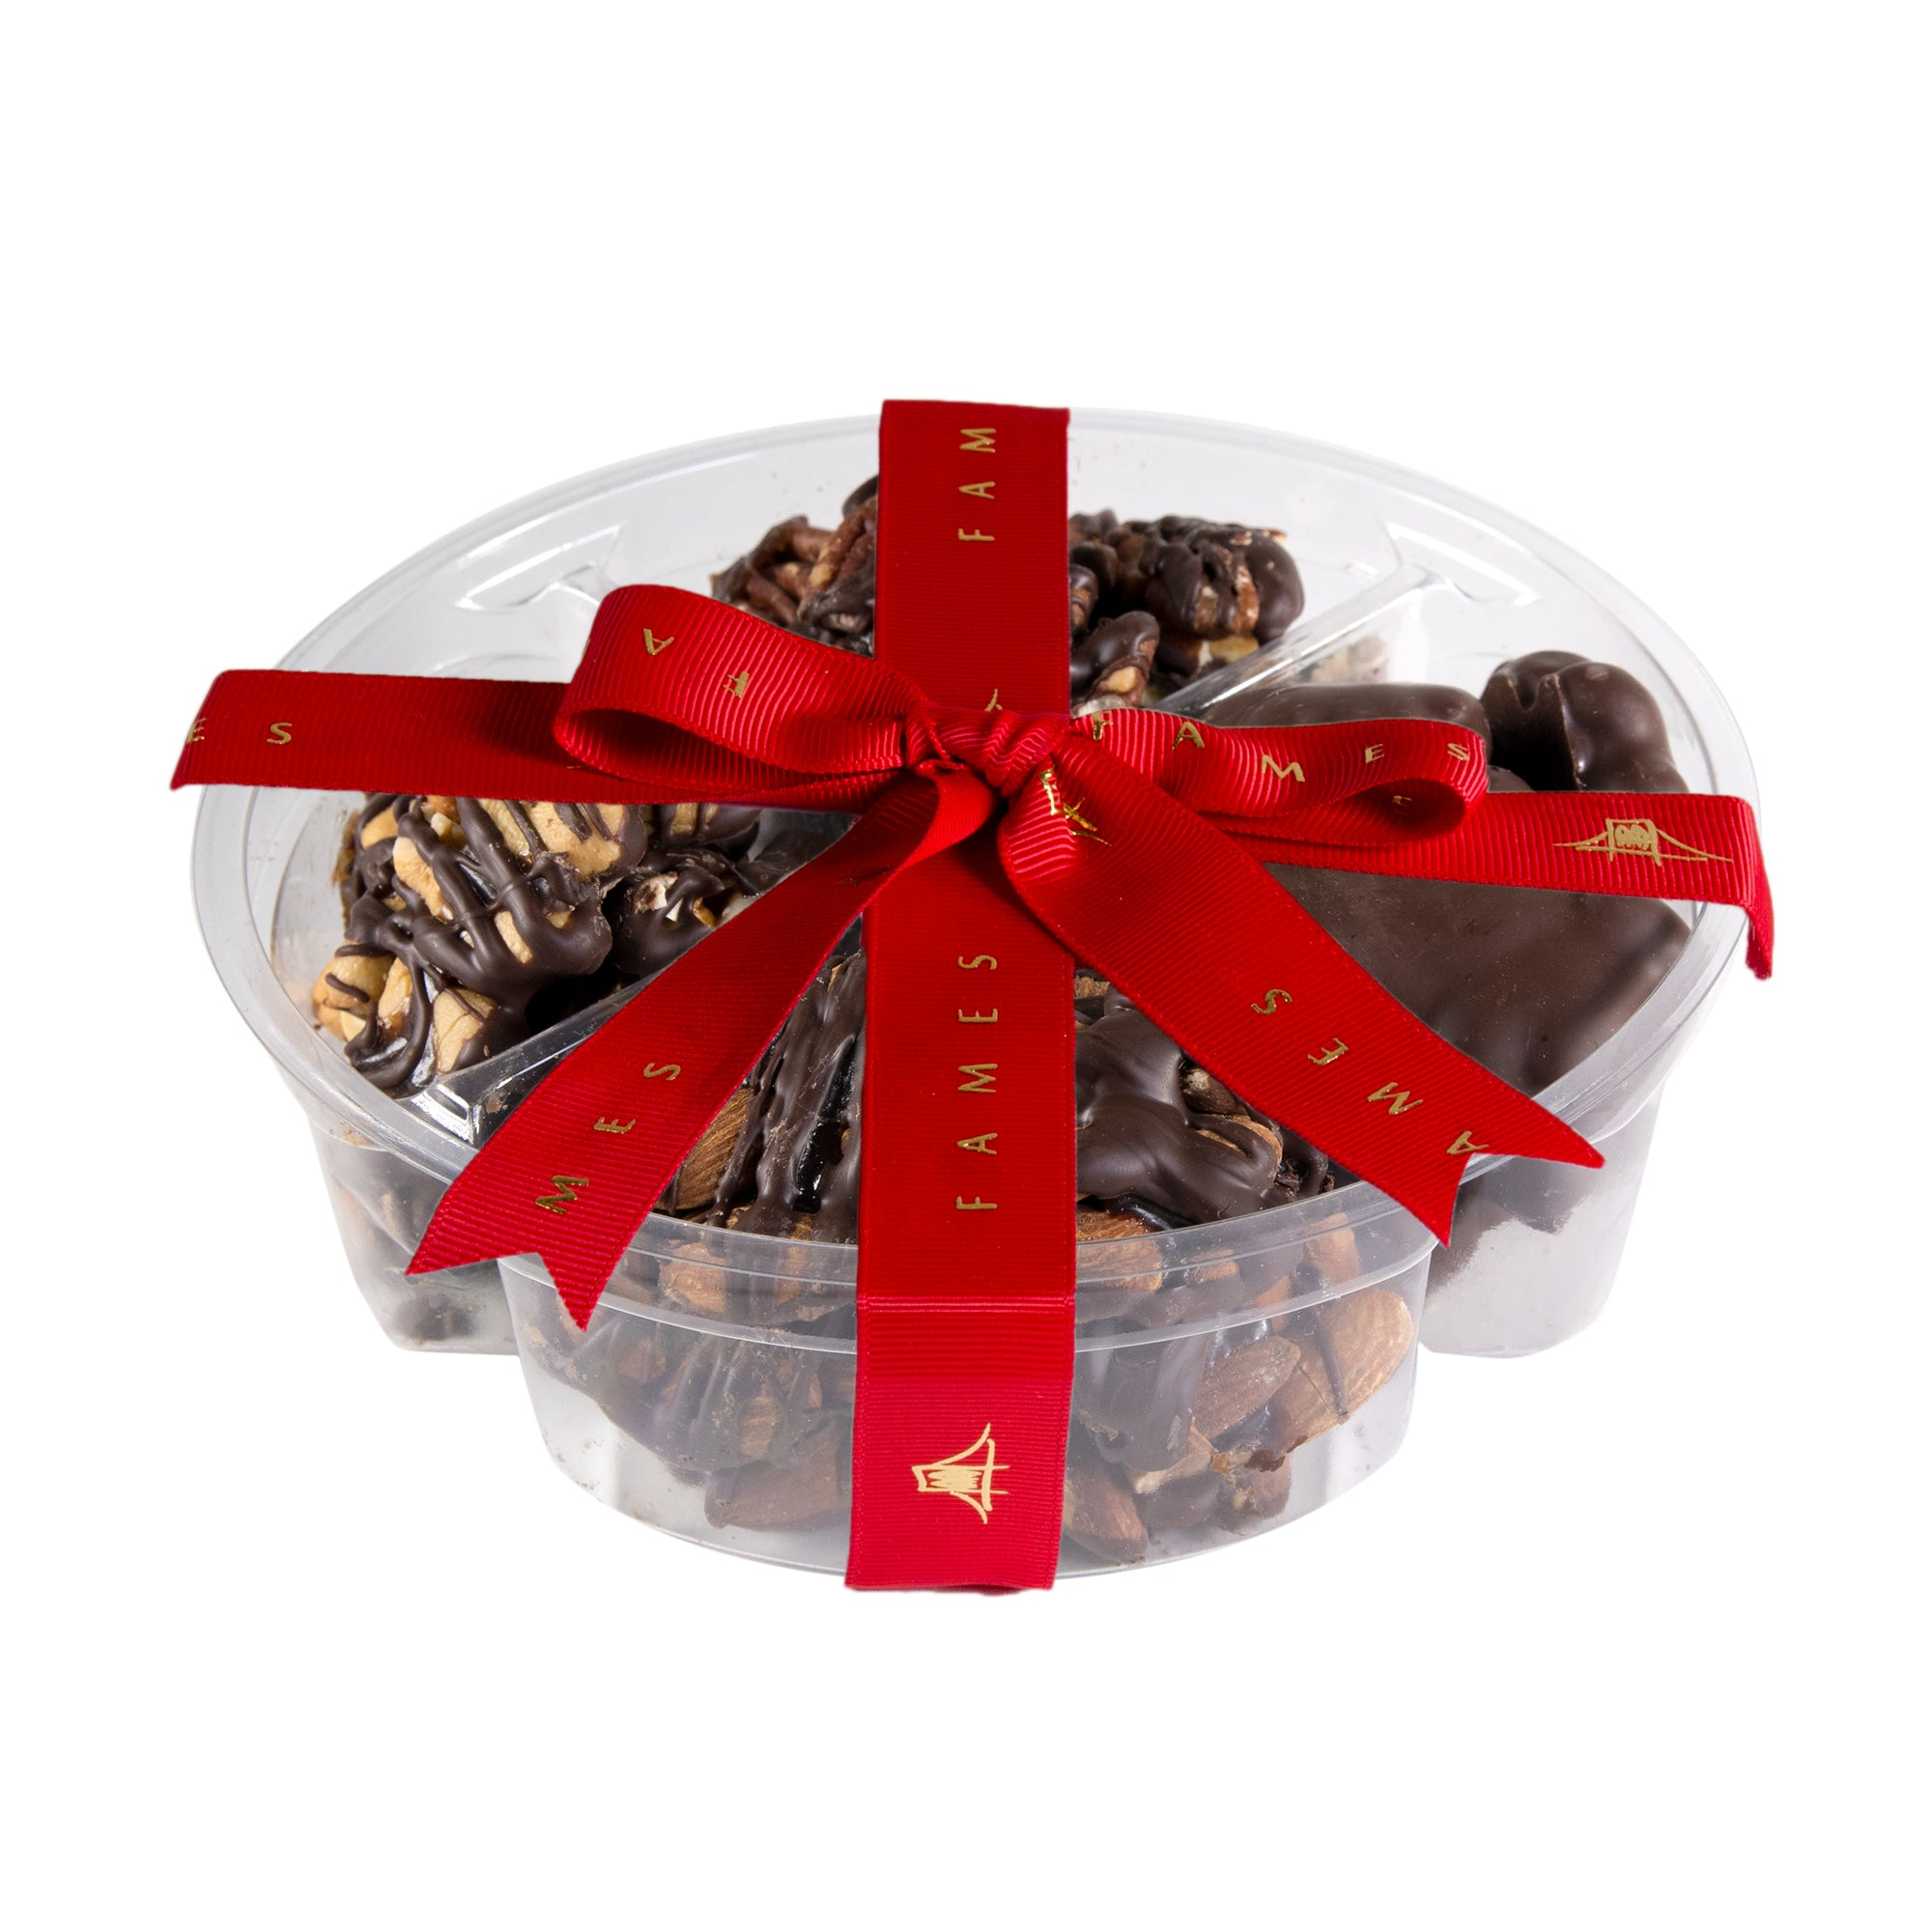 Select 4 chocolates you'd like for your custom chocolate assortment